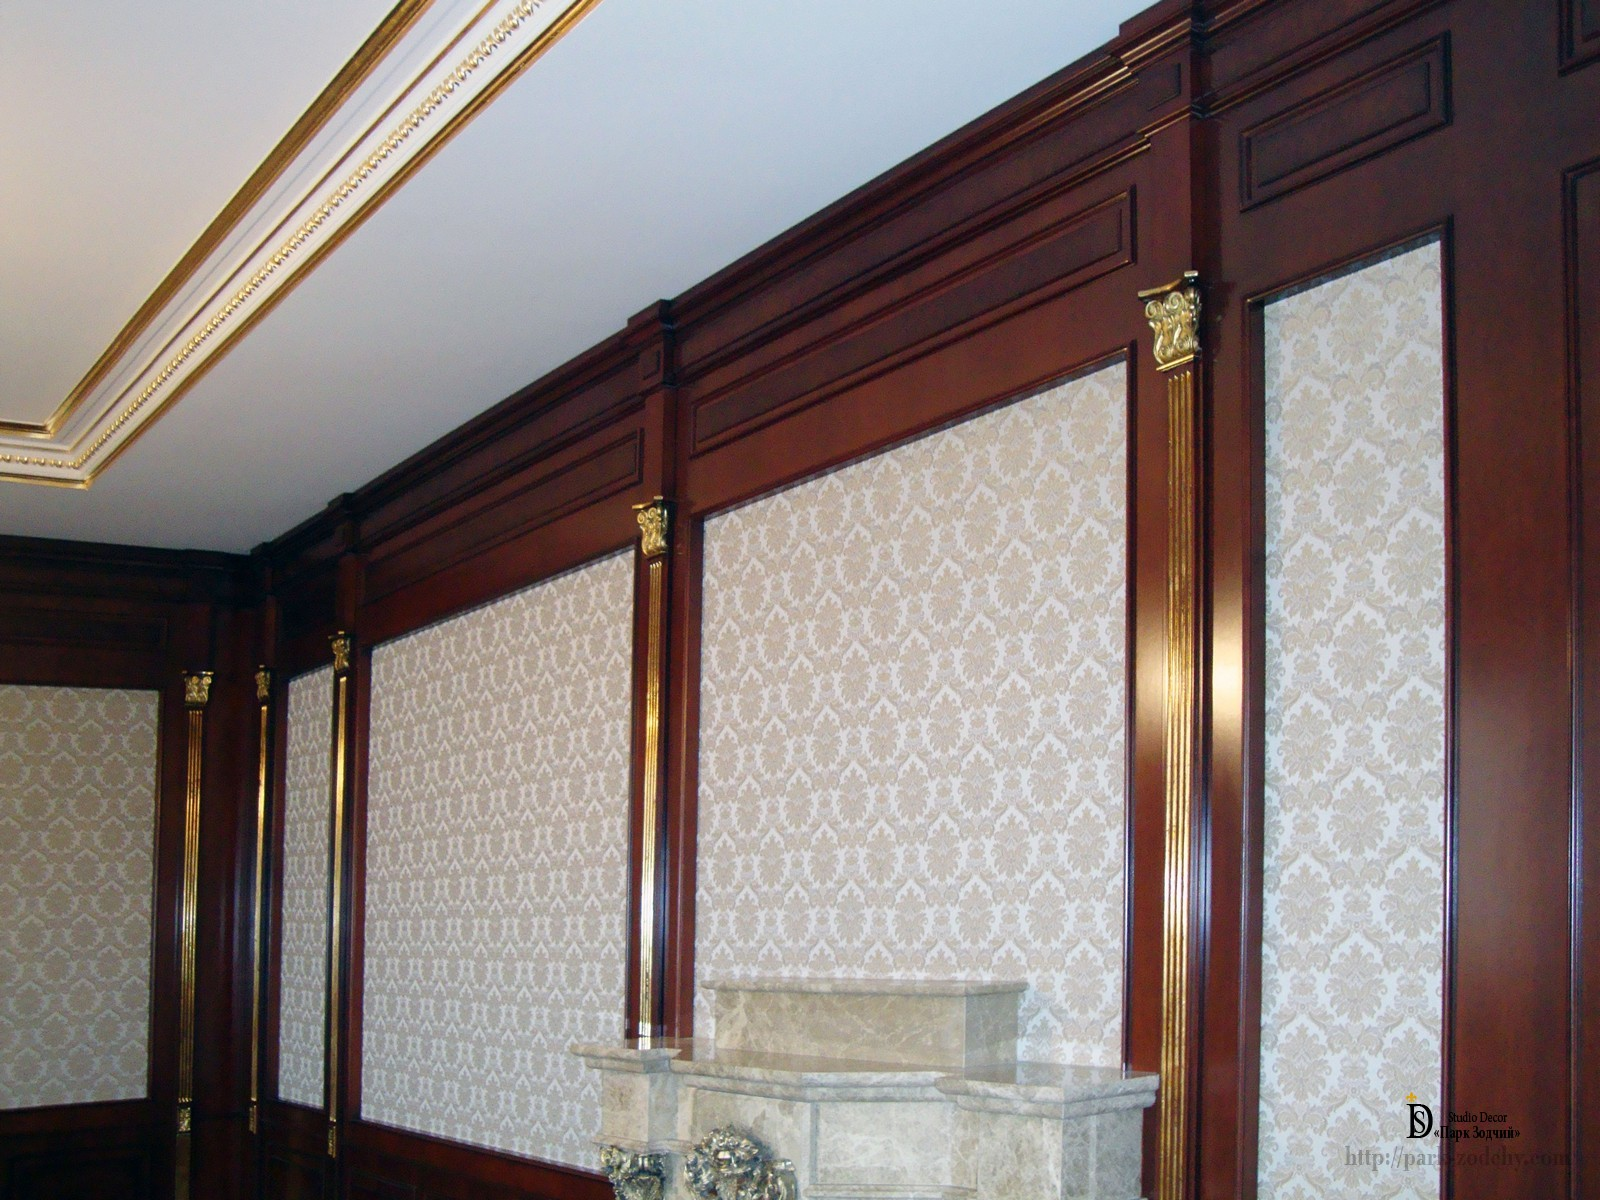 Wooden decor with gilded pilasters